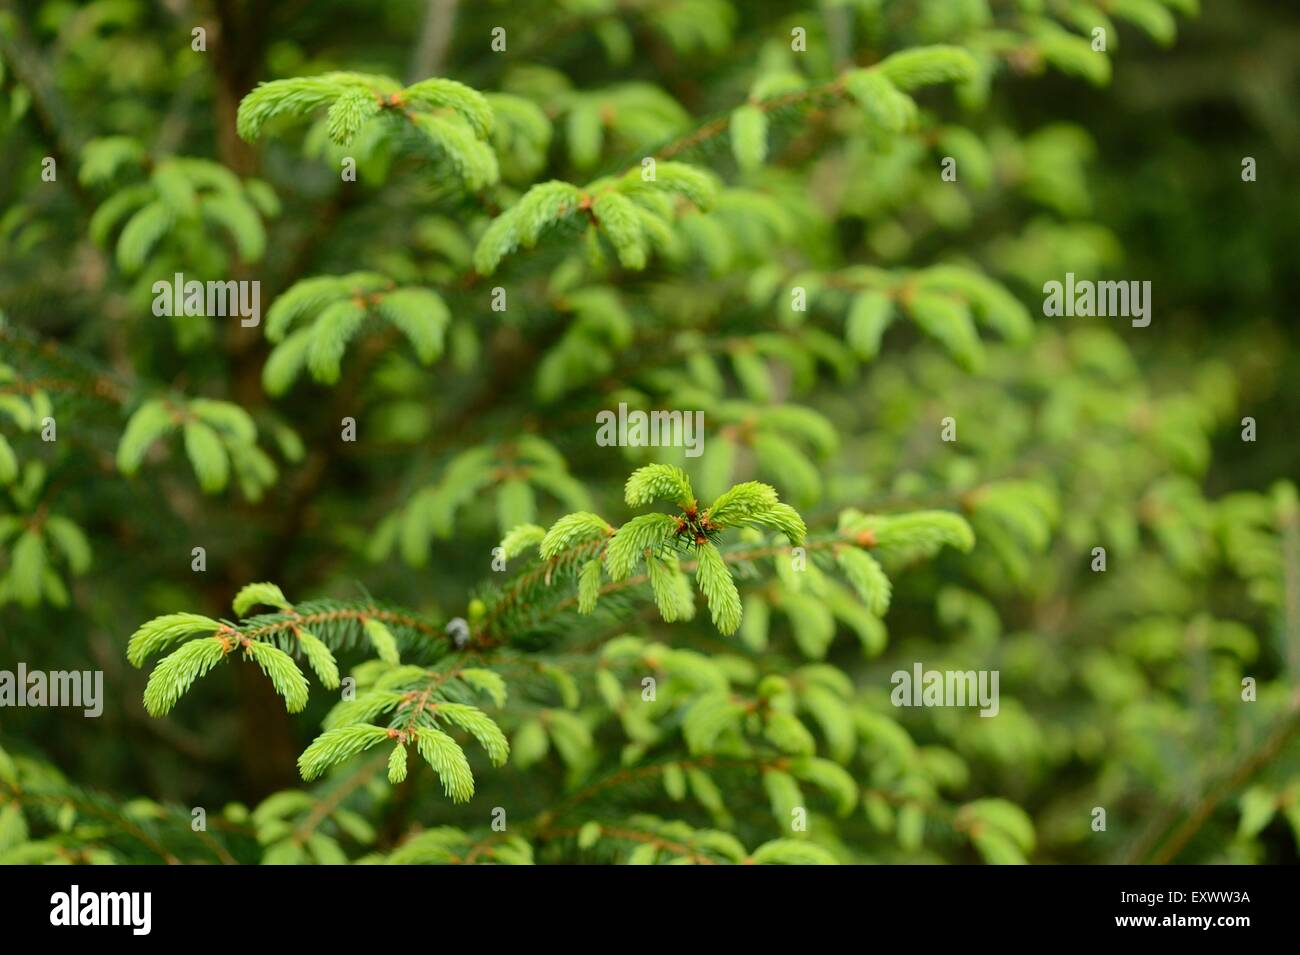 Norway spruce shoots in spring - Stock Image